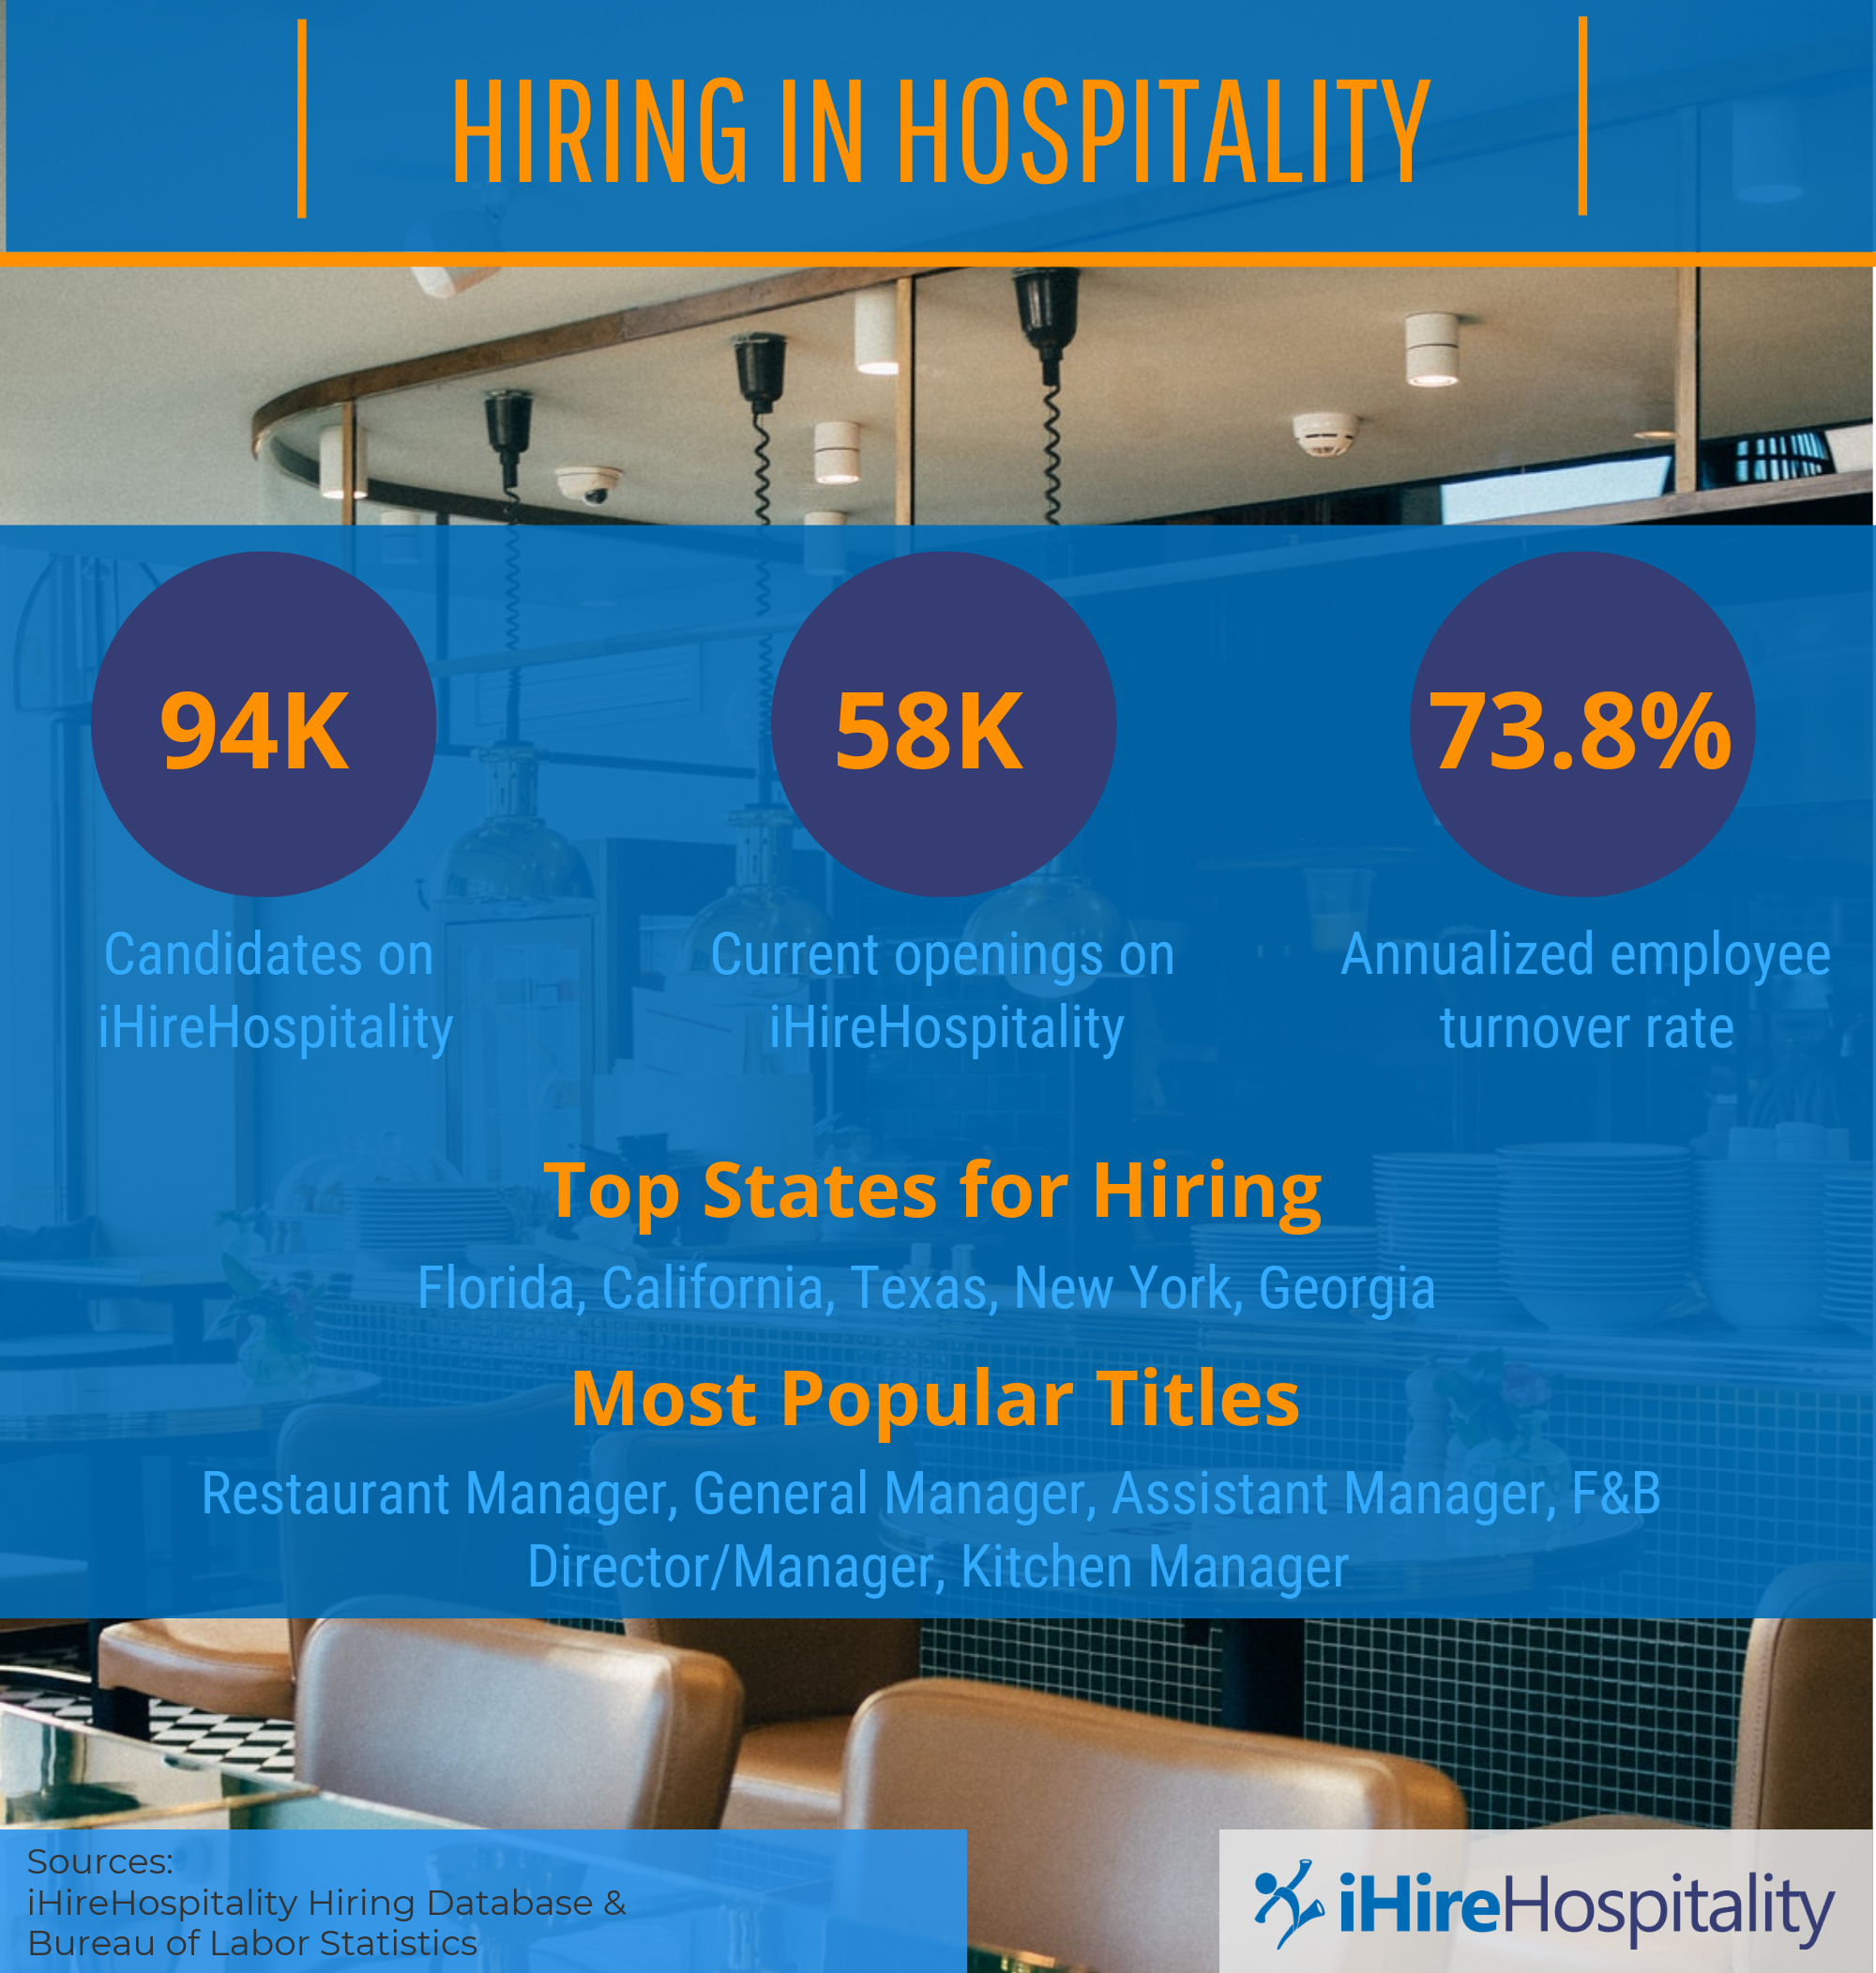 Graphic showing statistics related to hiring in the hospitality industry